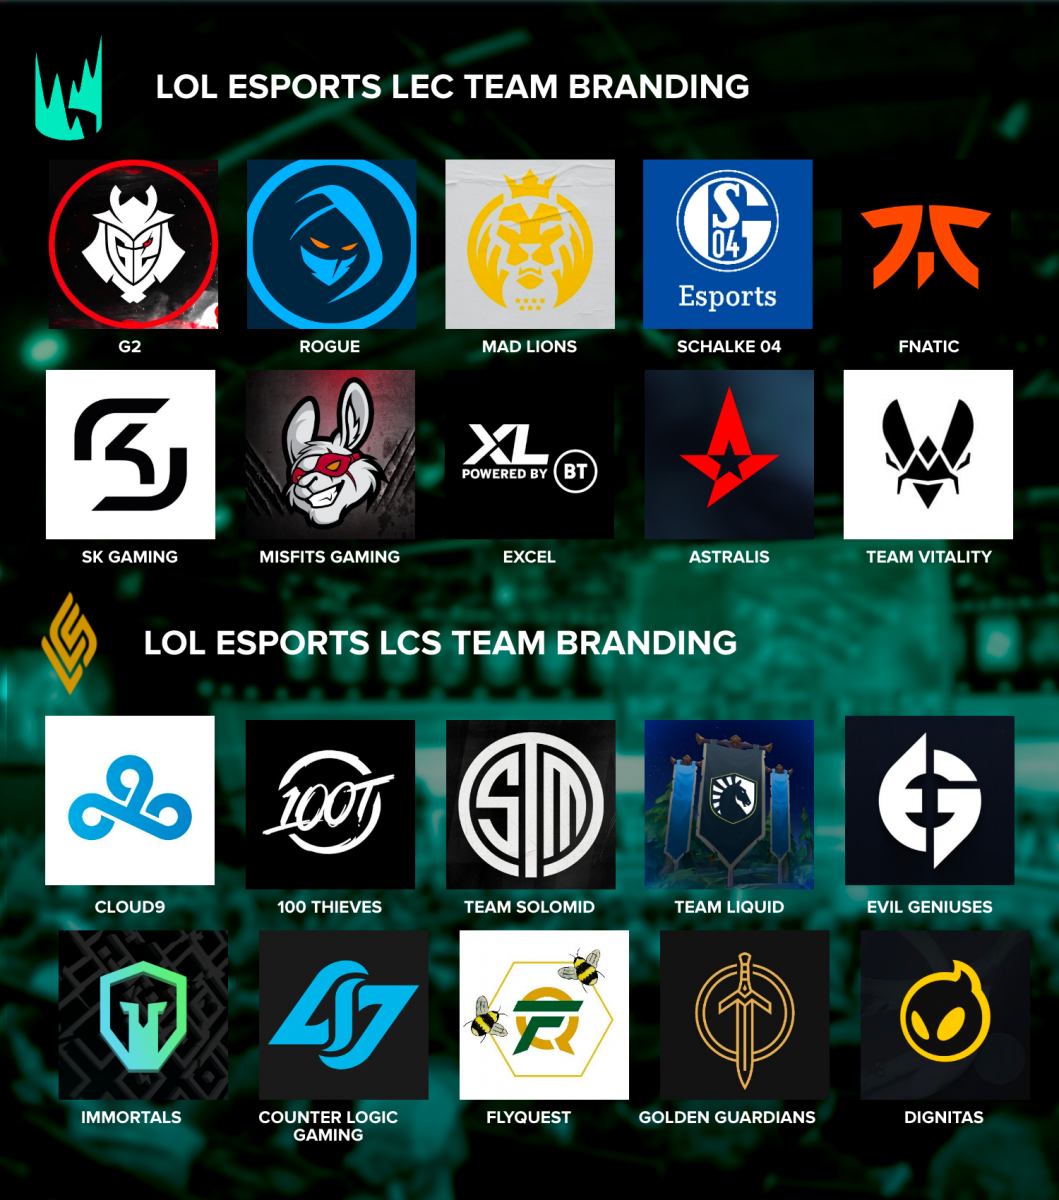 Turquoise: Selections of LoL Esports Team Branding